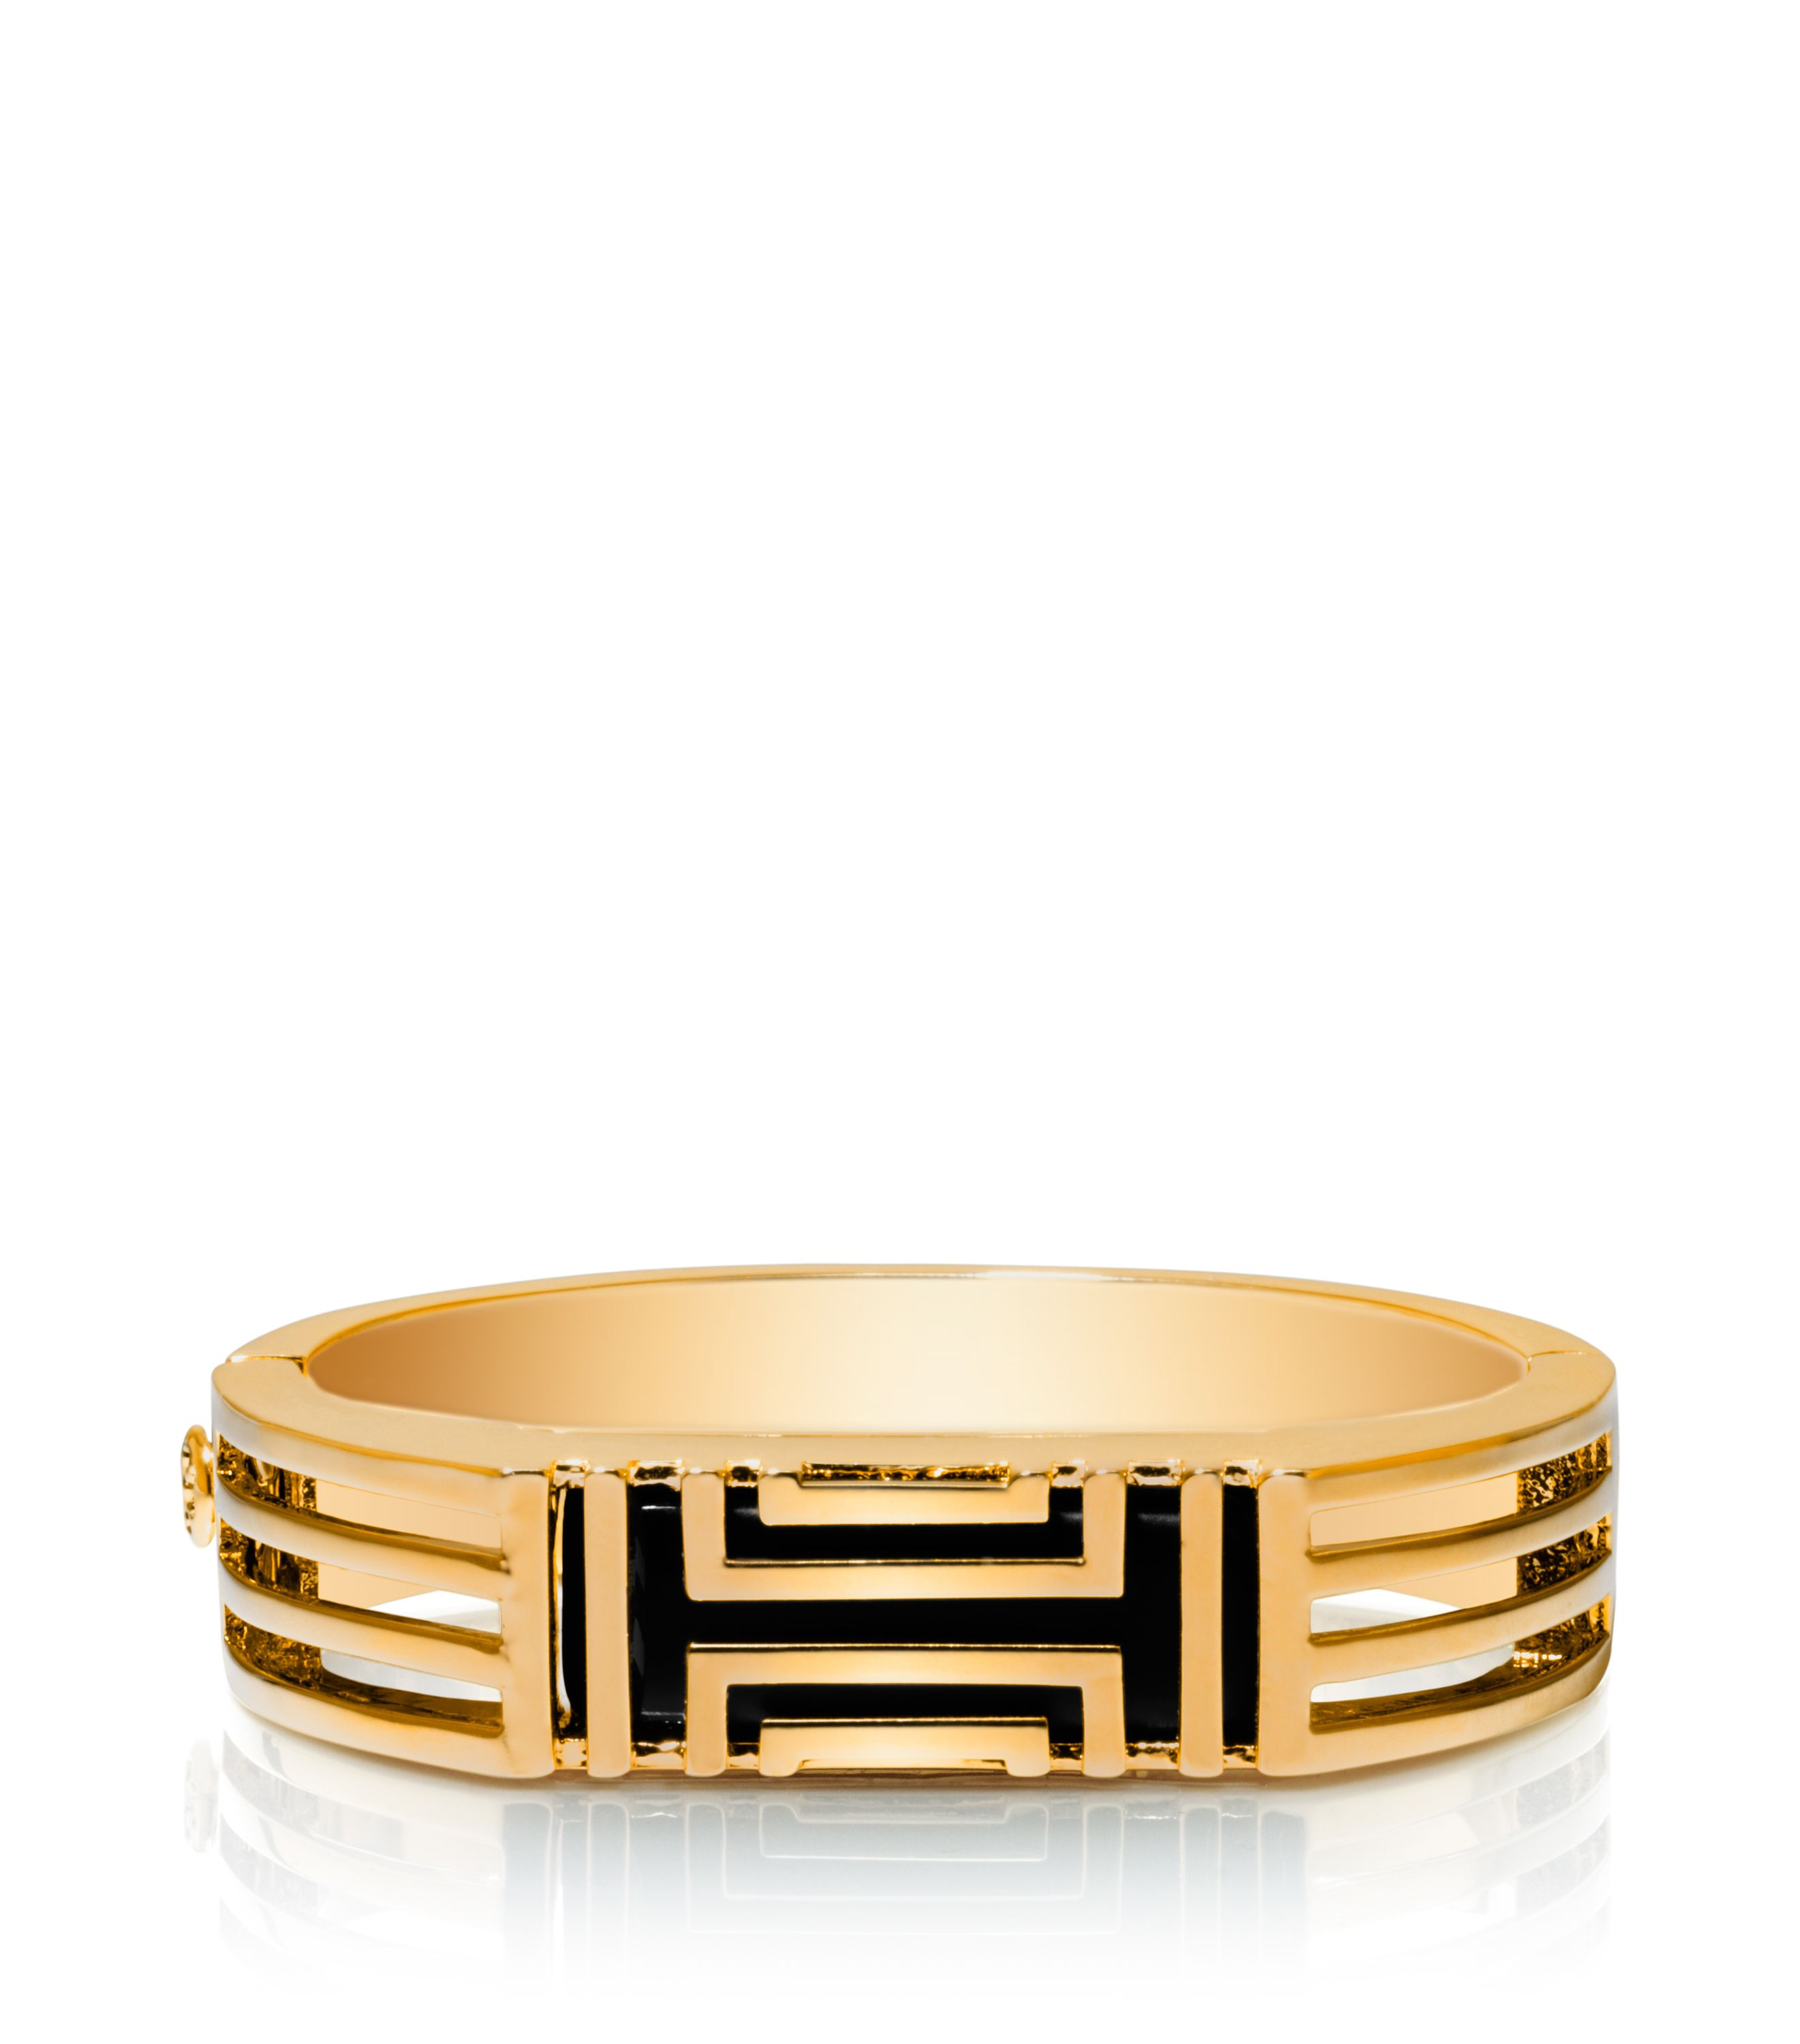 Sale alerts for Tory Burch Tory Burch for Fitbit Metal Hinged Bracelet - Covvet